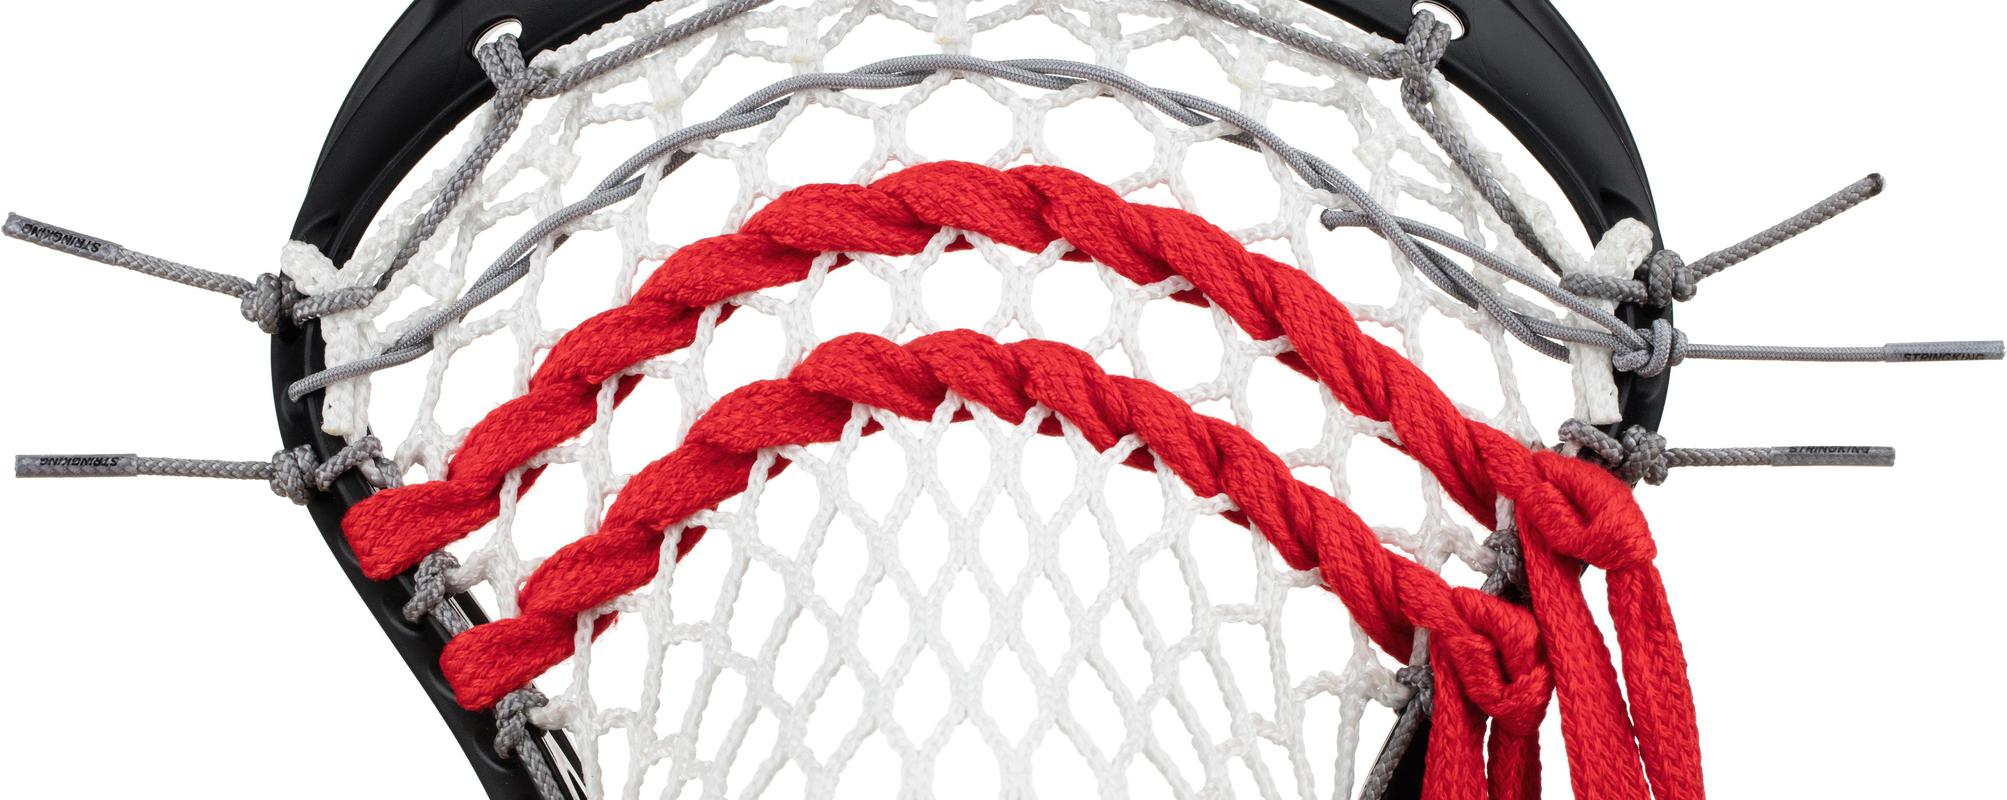 StringKing Lacrosse Mesh Stringing Supplies Shooting Laces Strung Pocket